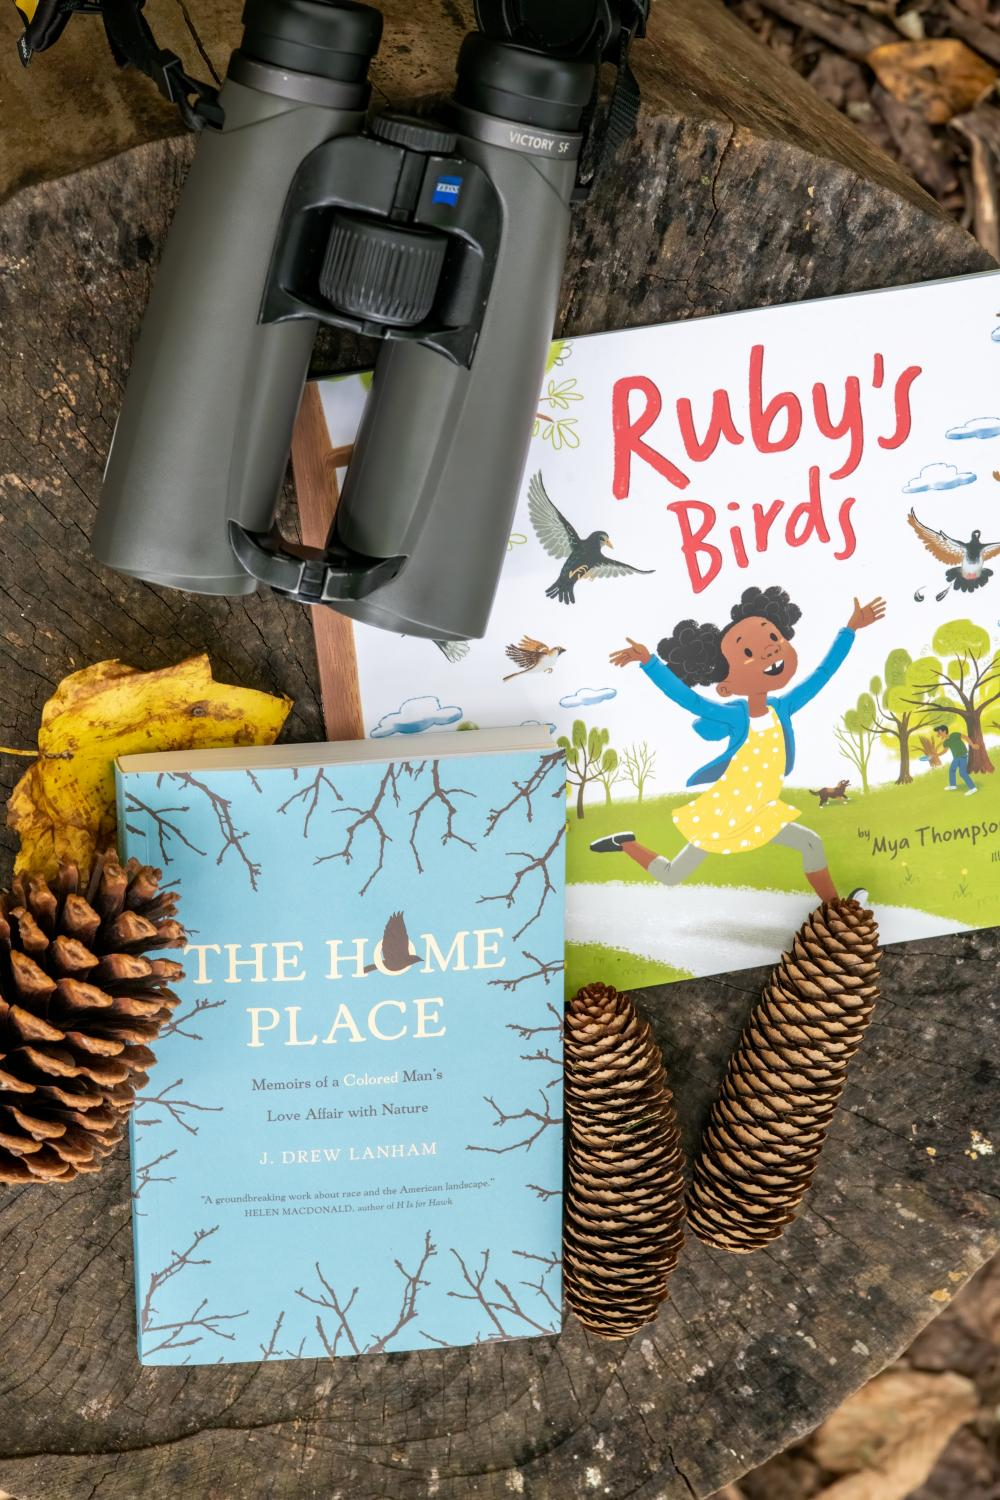 Picture of Ruby's Birds and The Home Place Books in nature with binoculars